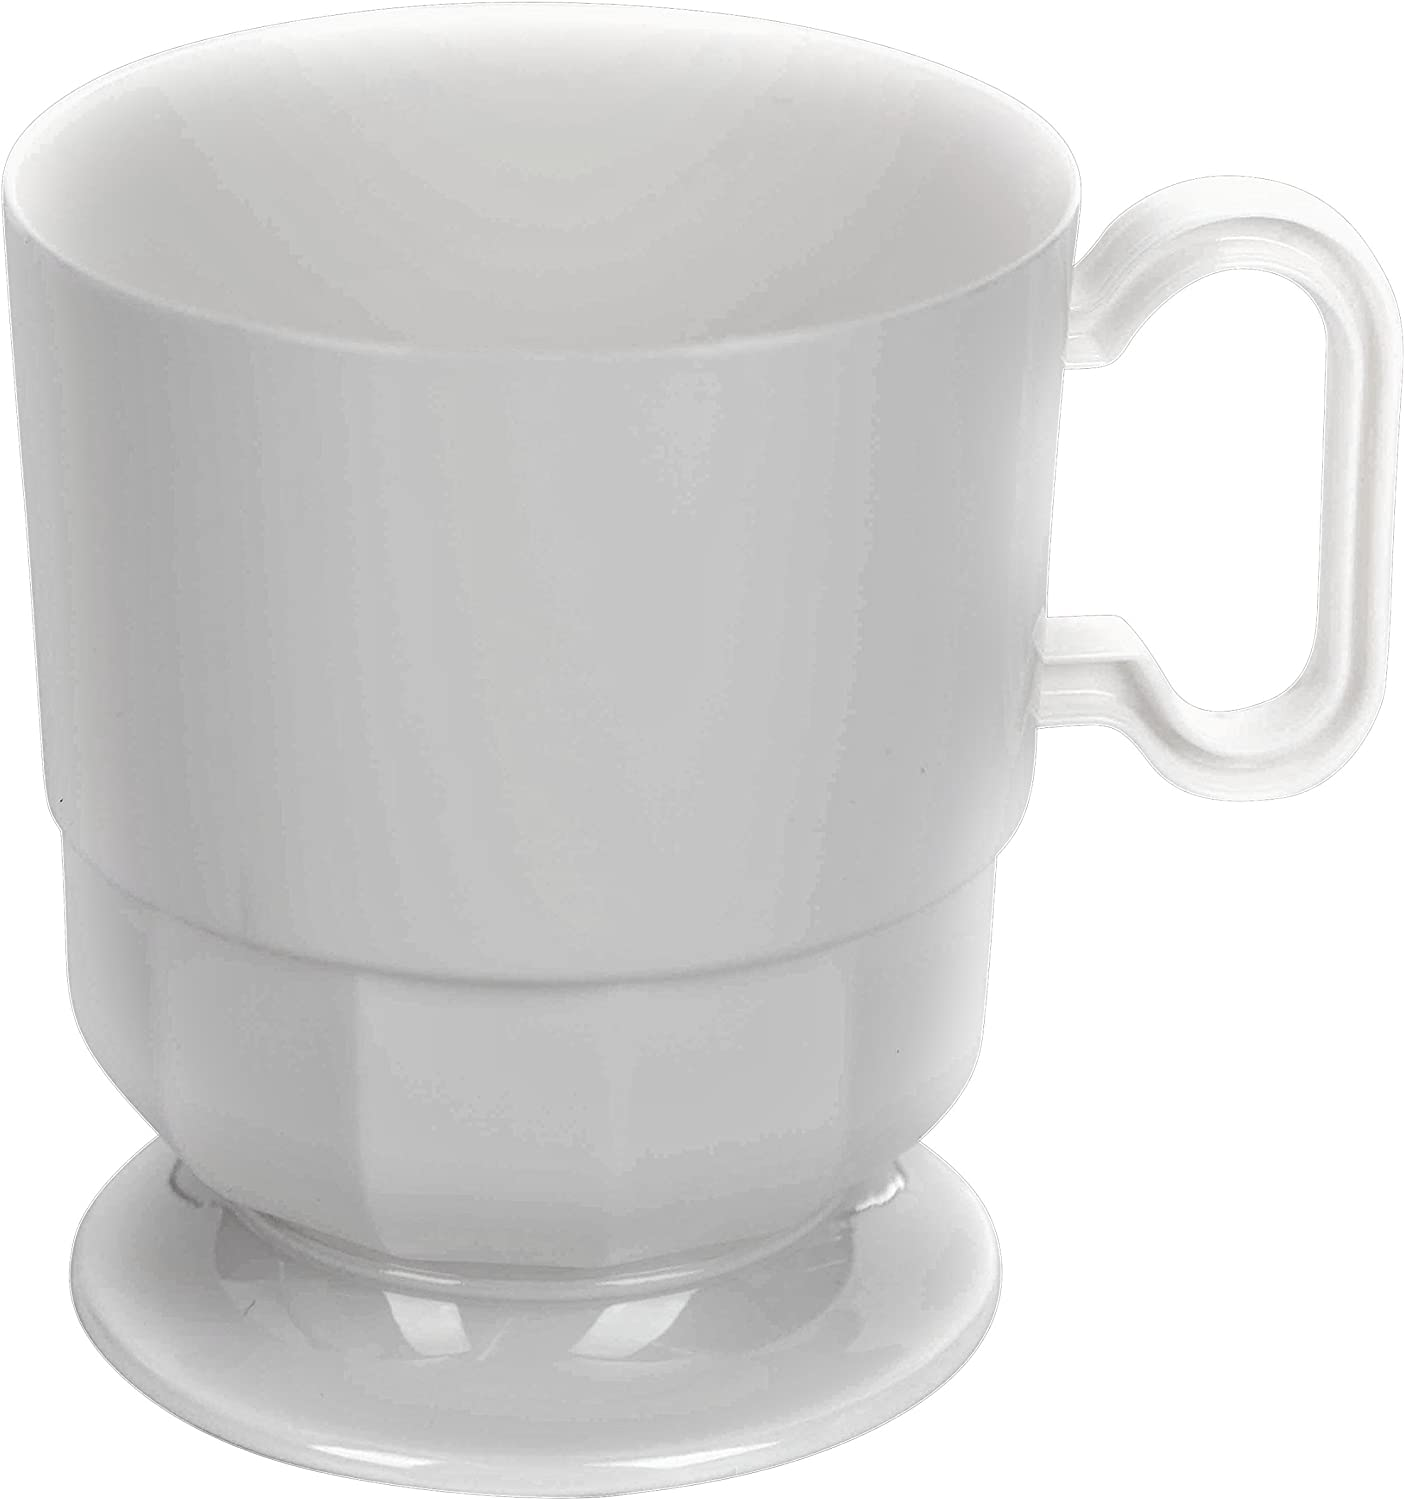 Exquisite White Premium Plastic Coffee Cups - 8 oz Coffee Mug - White Tea Cup - 192 - Count